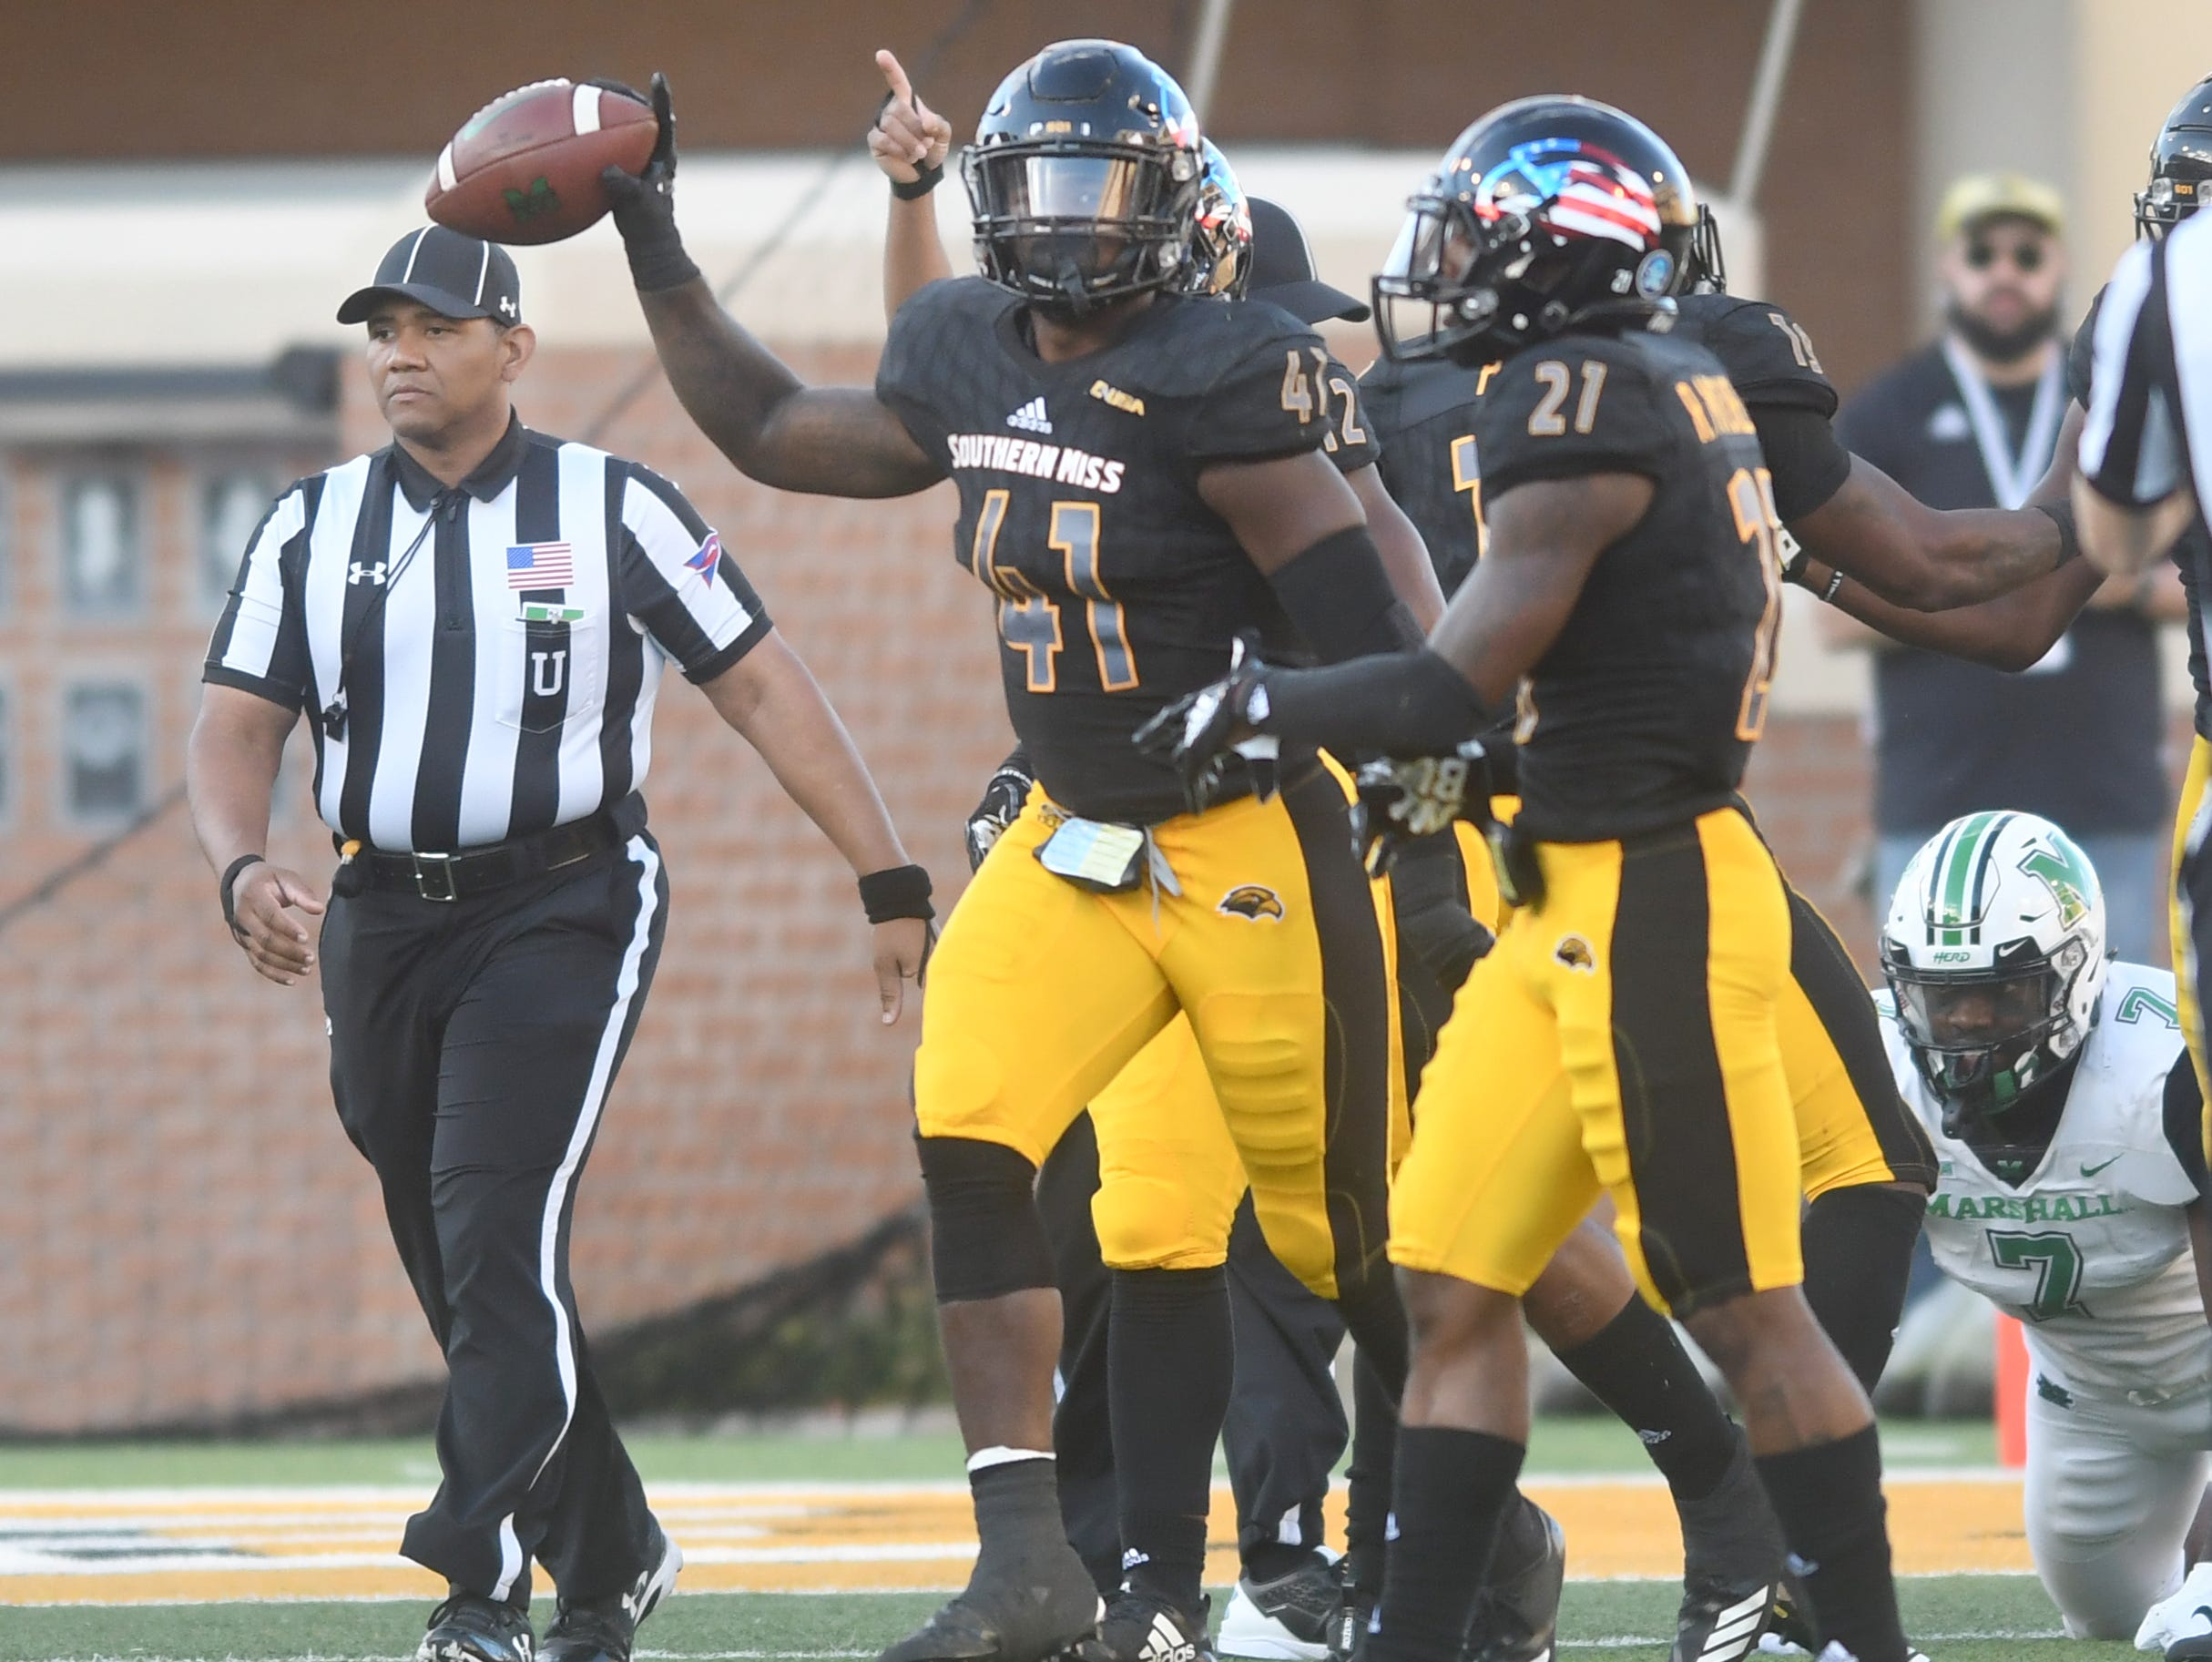 Southern Miss linebacker Racheem Boothe recovers a fumble in a game against Marshall at M.M. Roberts Stadium on Saturday, November 3, 2018.